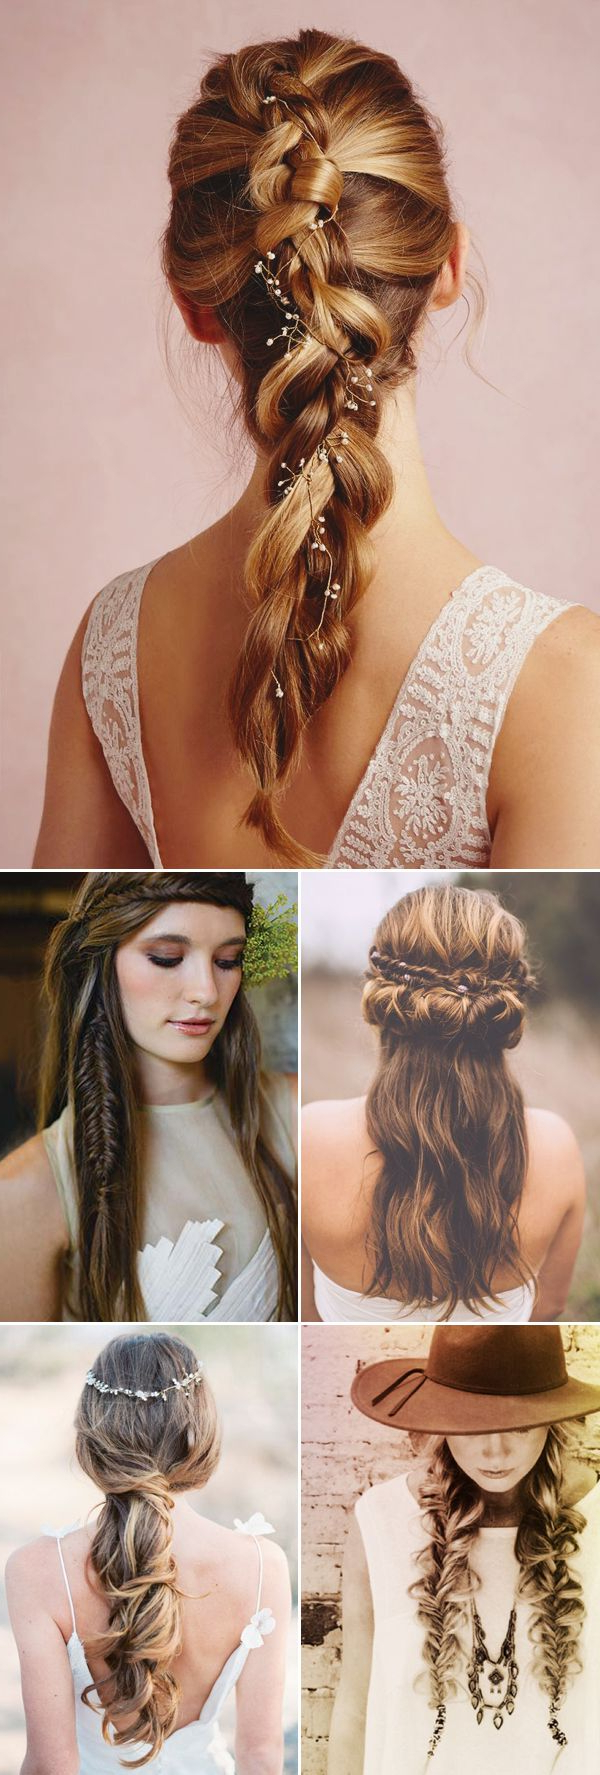 26 Boho Hairstyles With Braids – Bun Updos & Other Great New Stuff Throughout 2018 Bohemian Braided Bun Bridal Hairstyles For Short Hair (View 3 of 20)